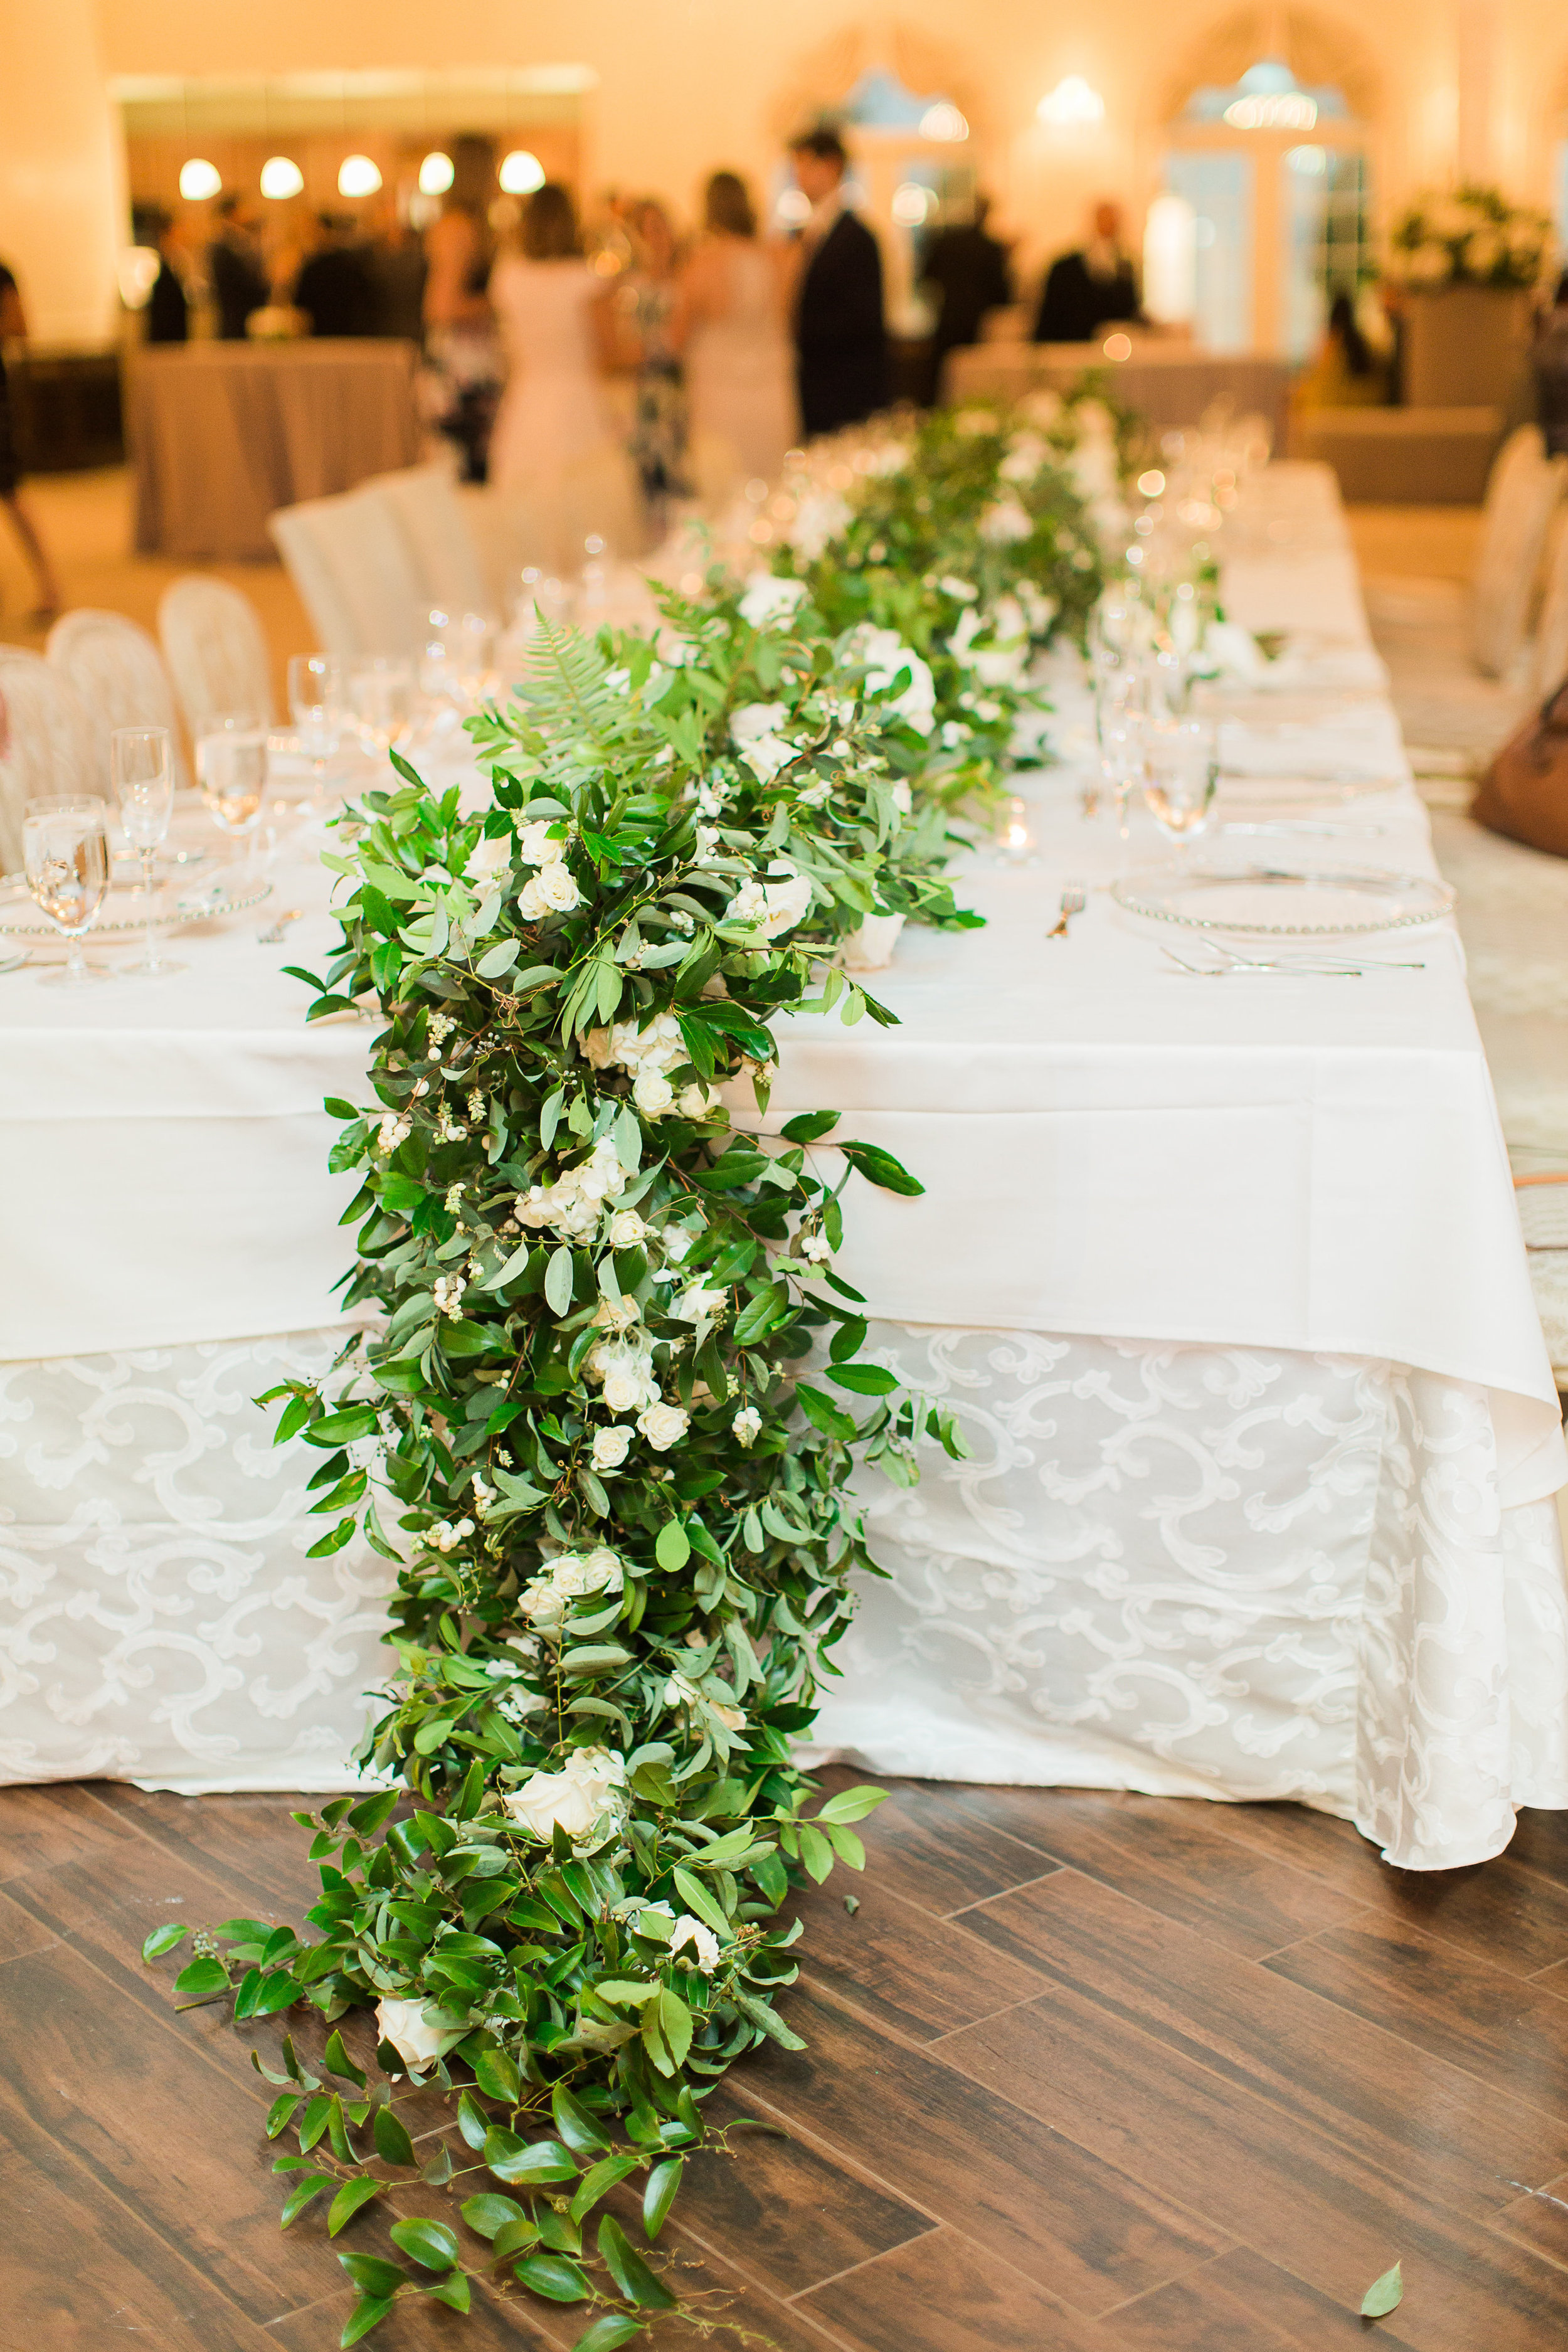 Greenery-Garland-Off-Table-Houston-Centerpiece-Wedding.jpg